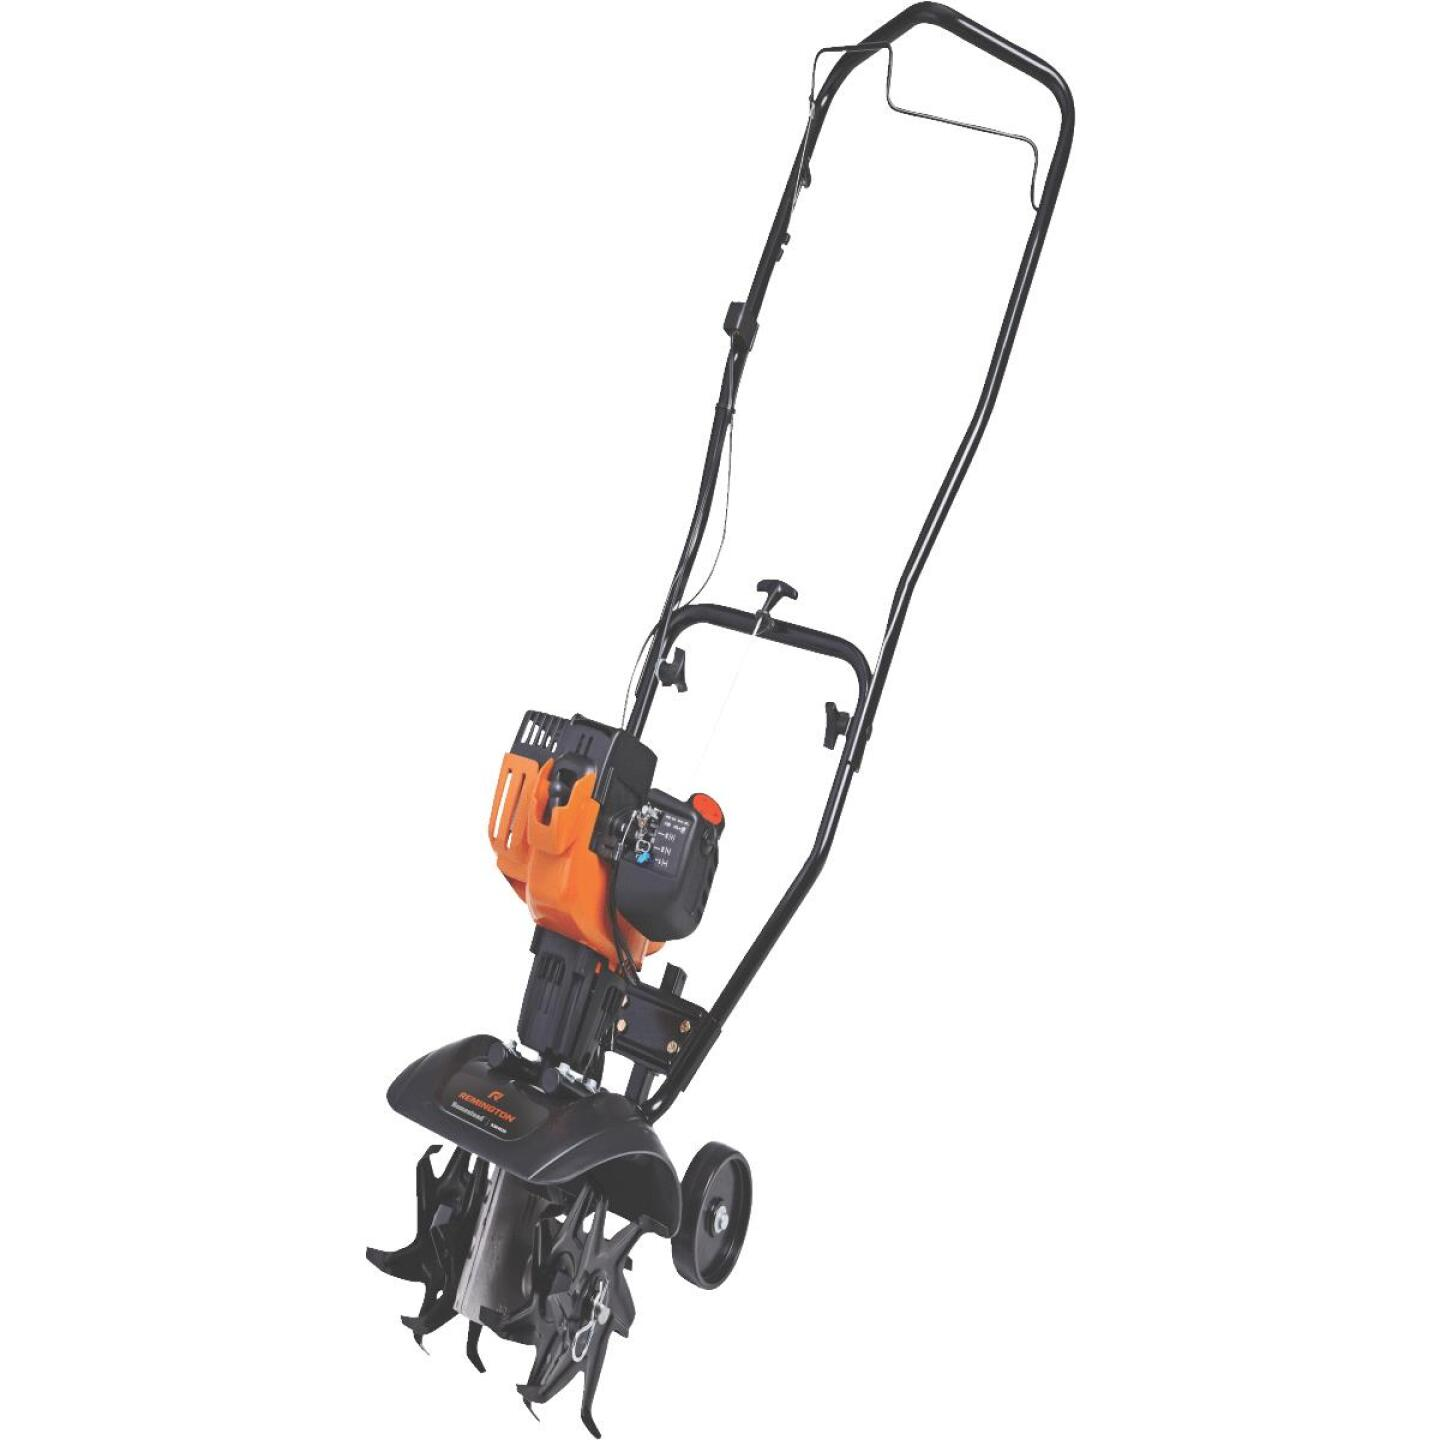 Remington RM4625 9 In. 25cc Mid Tine Forward-Rotating Garden Tiller/Cultivator Image 1